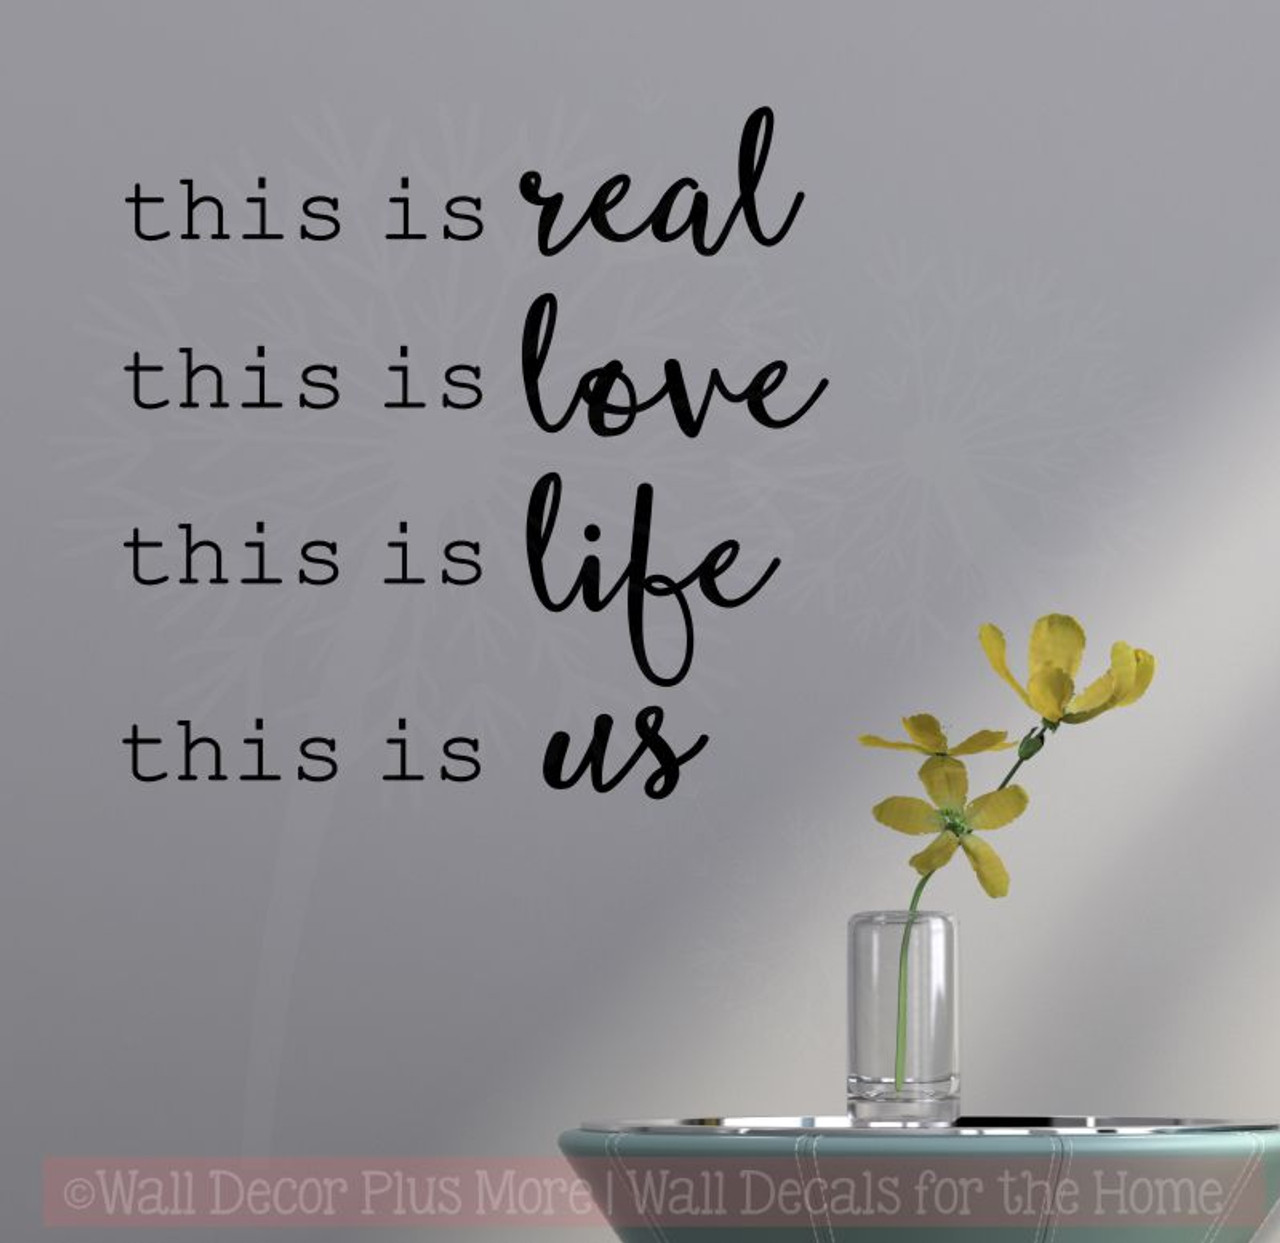 This Is Real This Is Us Home Decor Wall Decal Stickers Bedroom